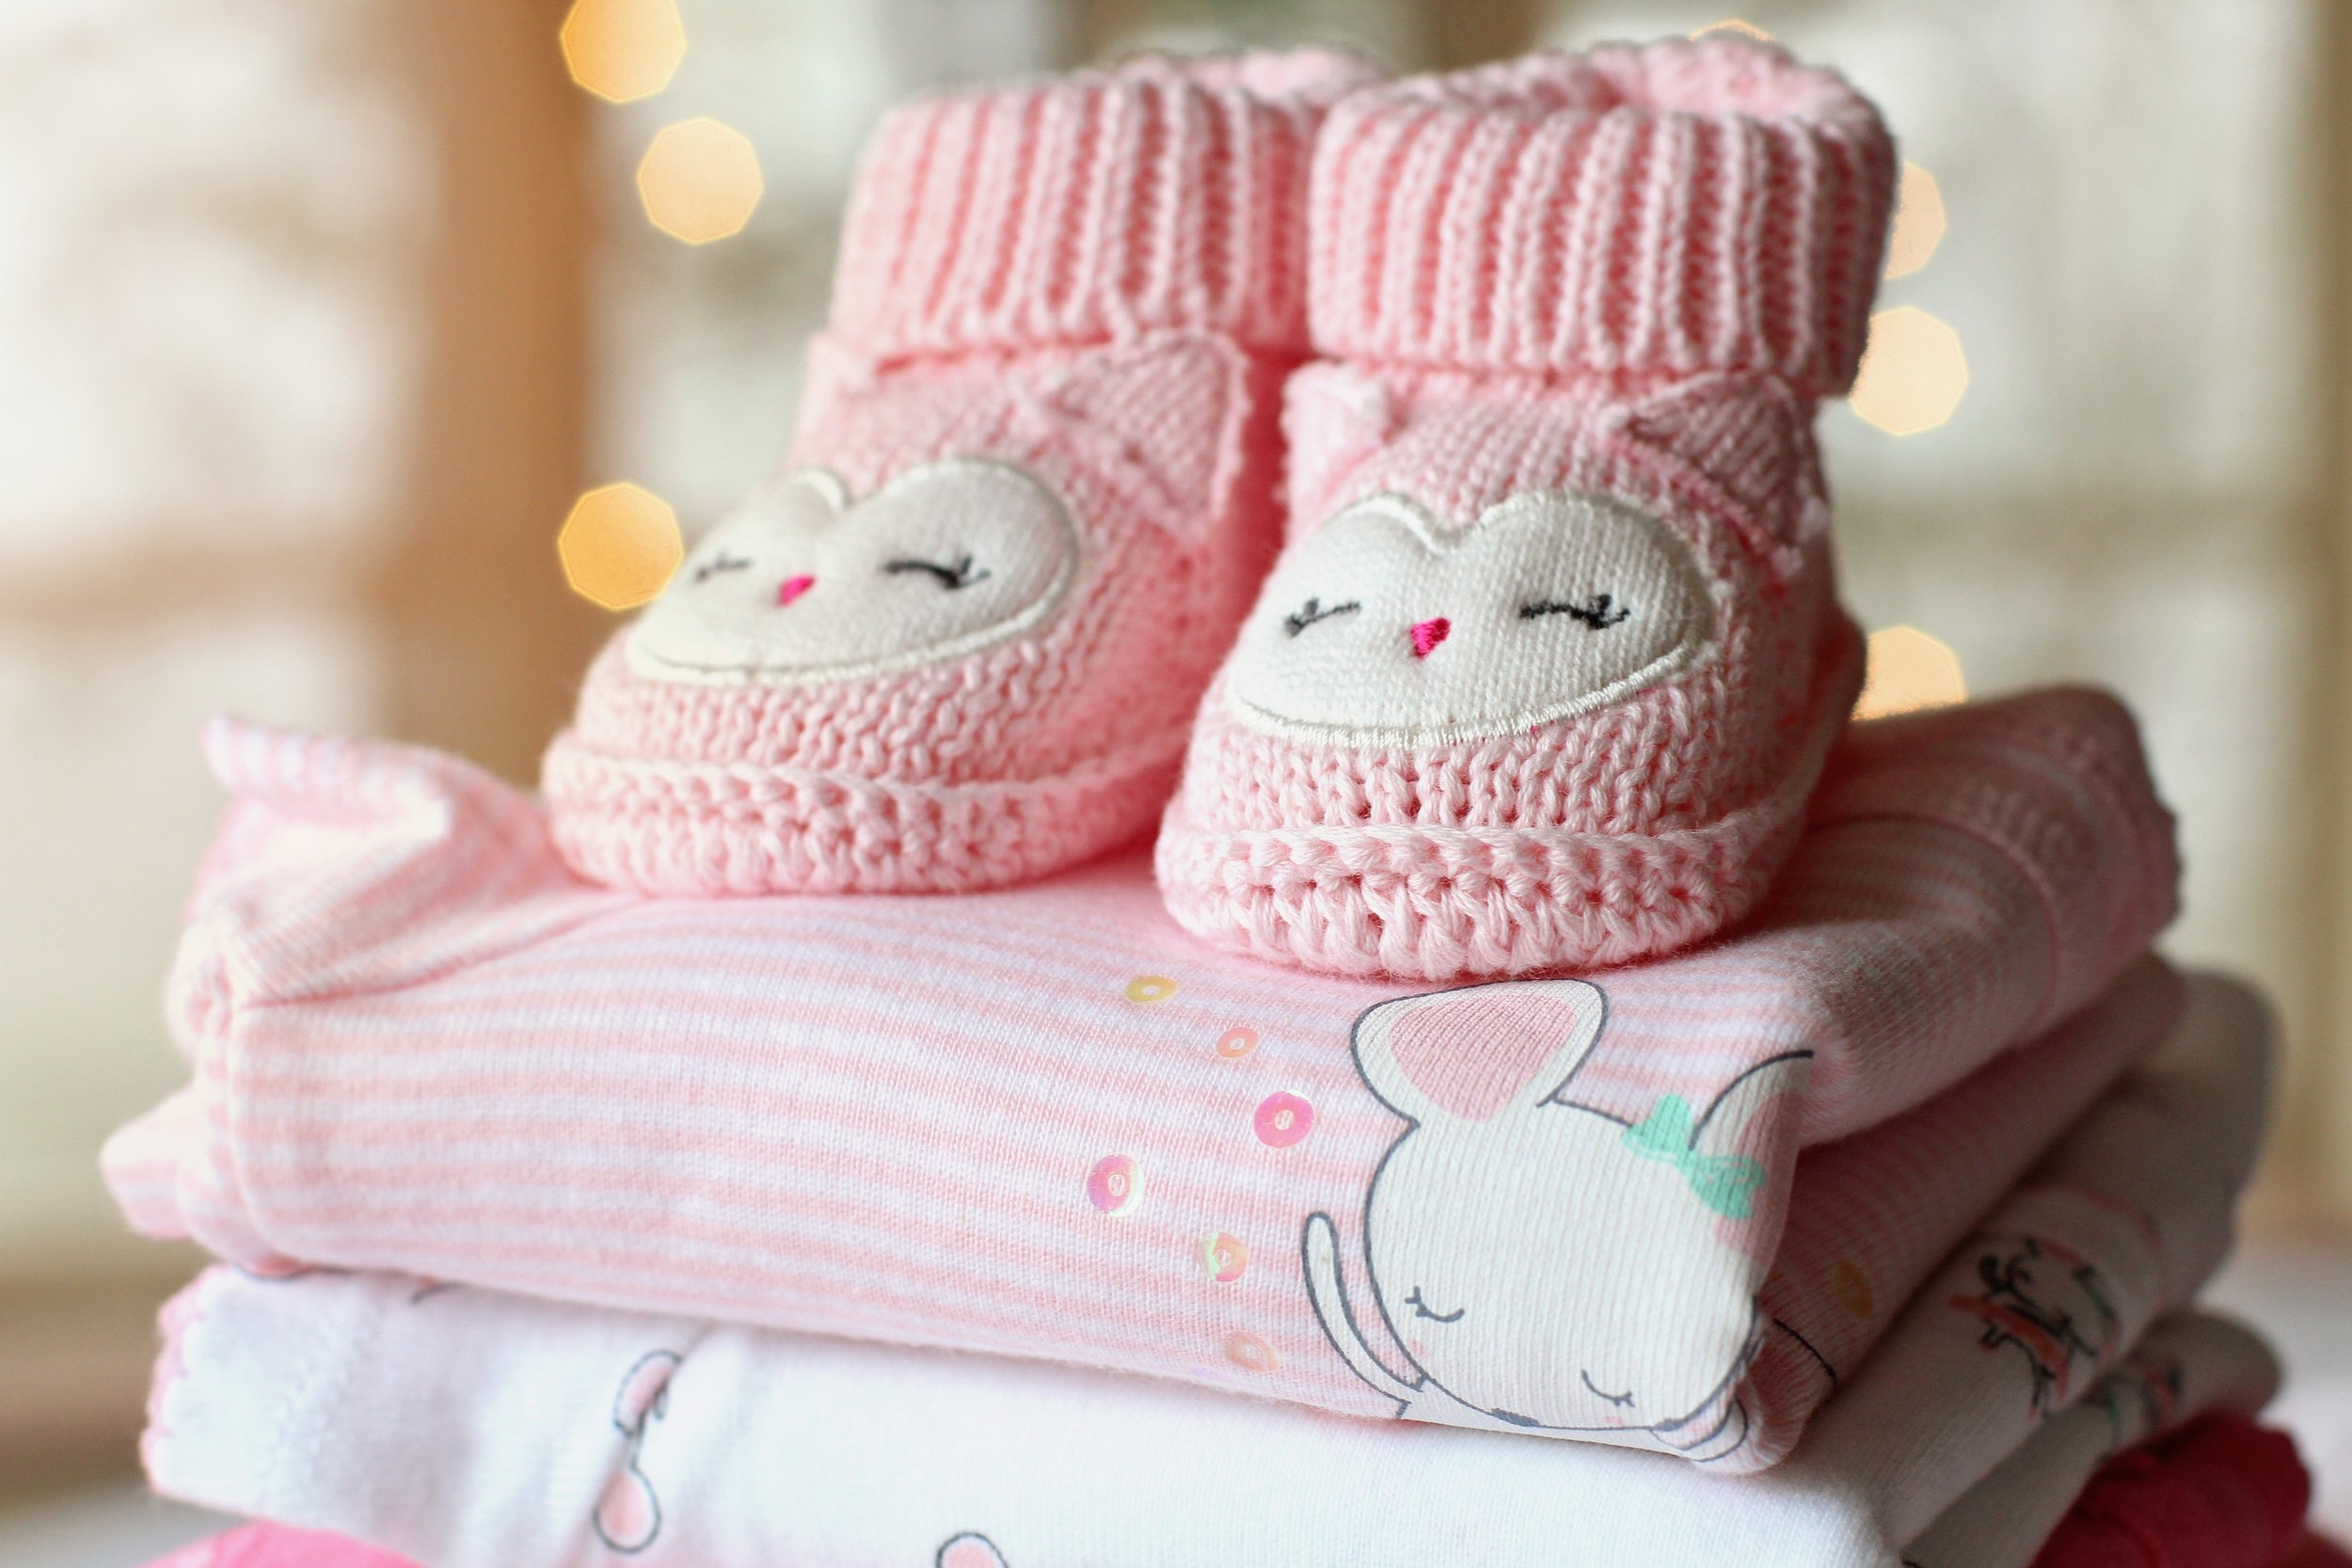 accessories-adorable-baby-Photography.jpg